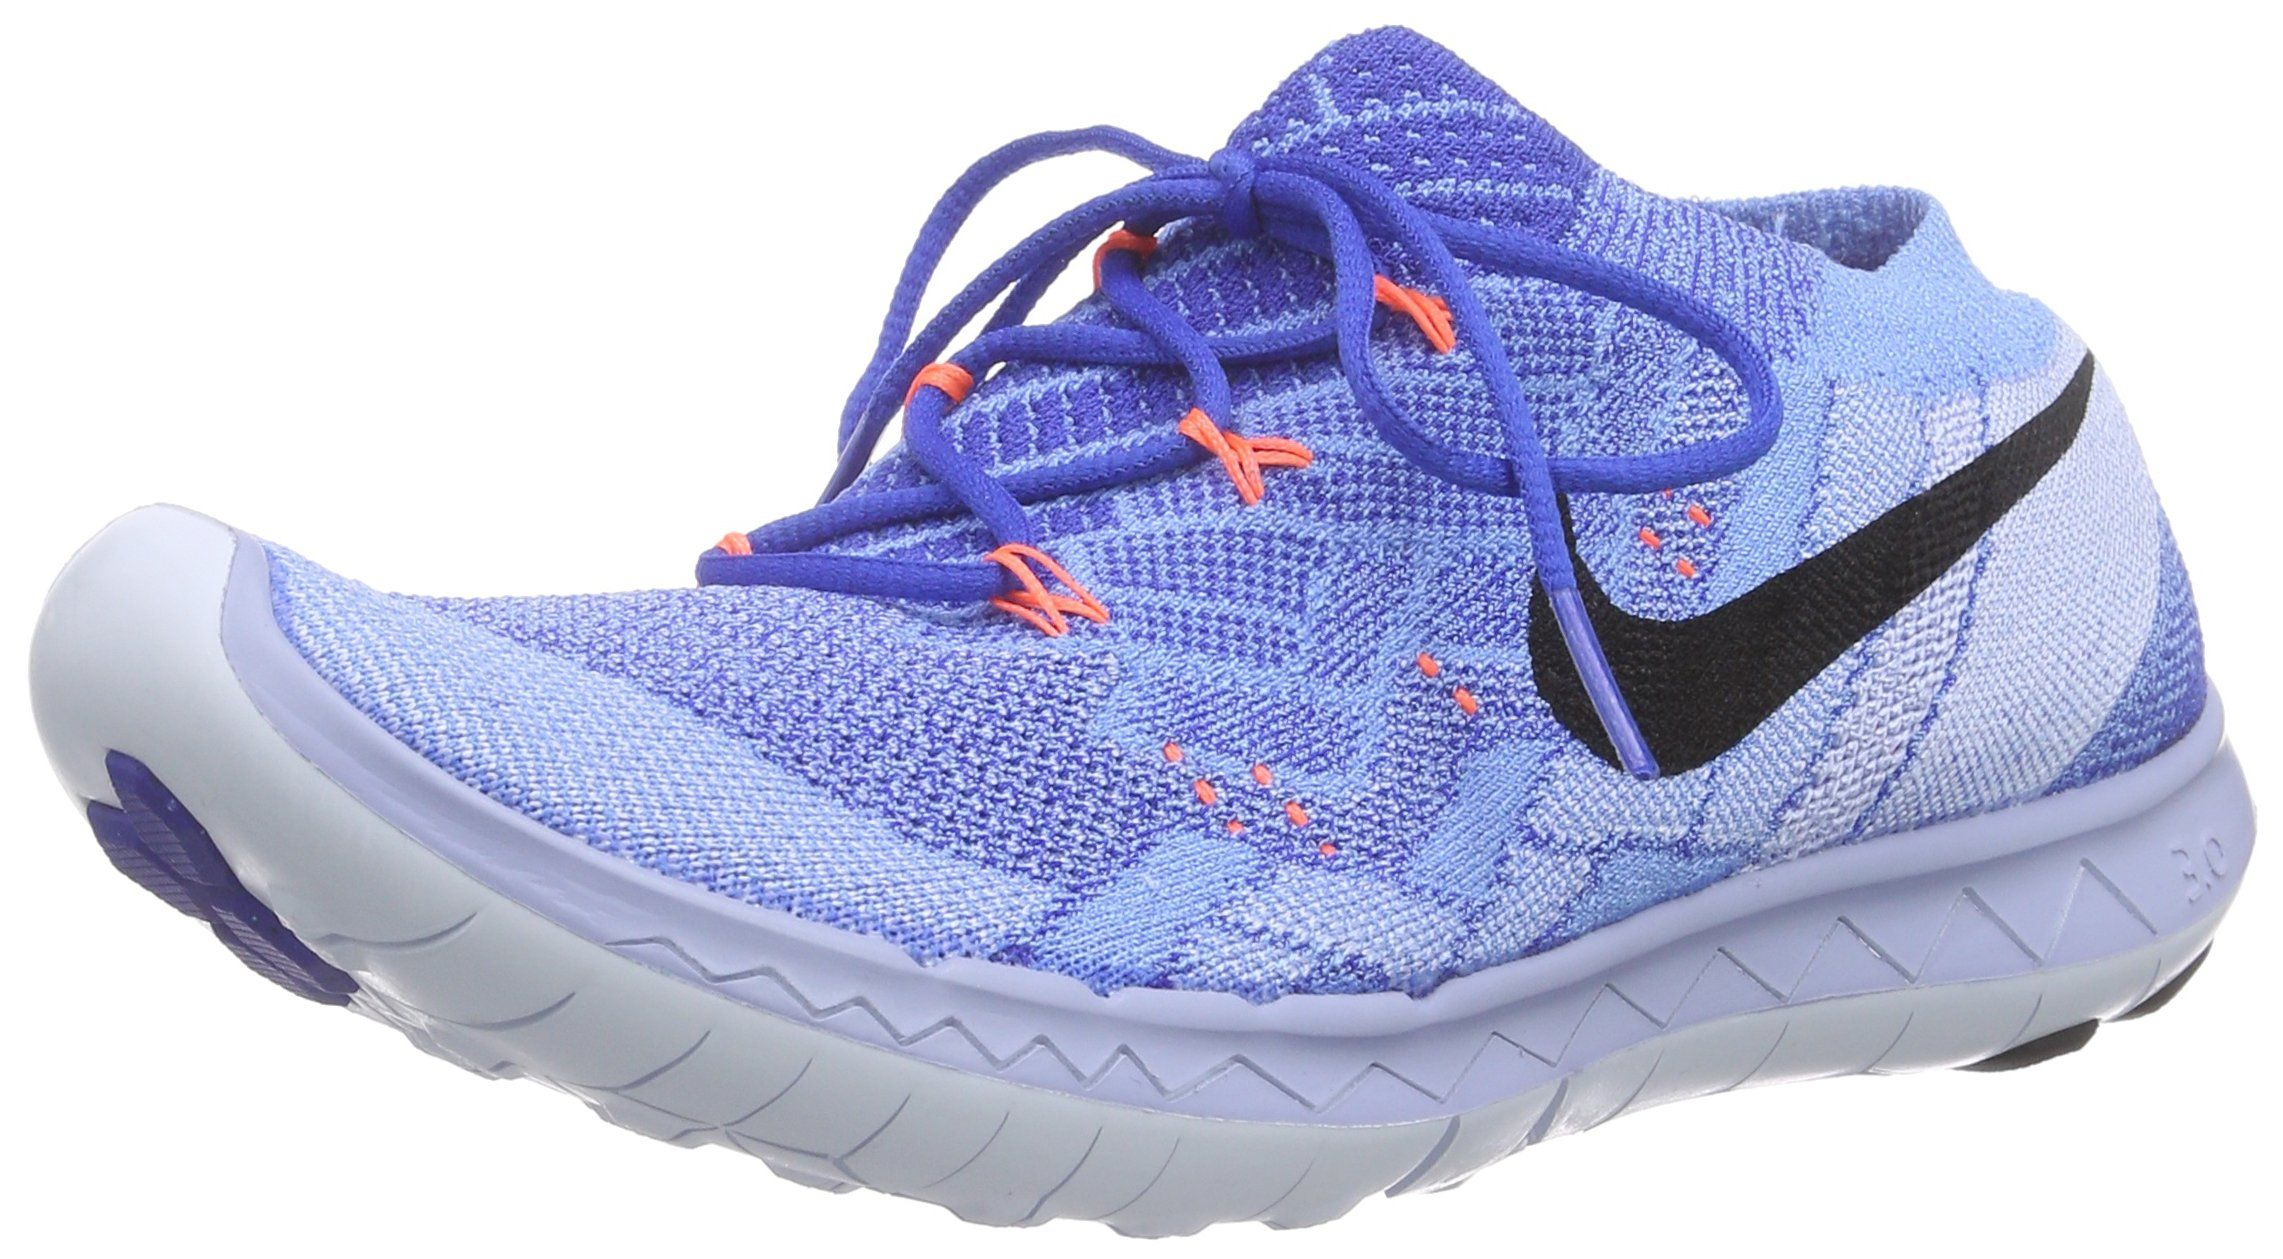 reputable site 67630 3a805 Women s Nike Free 3.0 Flyknit Racer Running Shoes (7.5, Racer Blue Black-